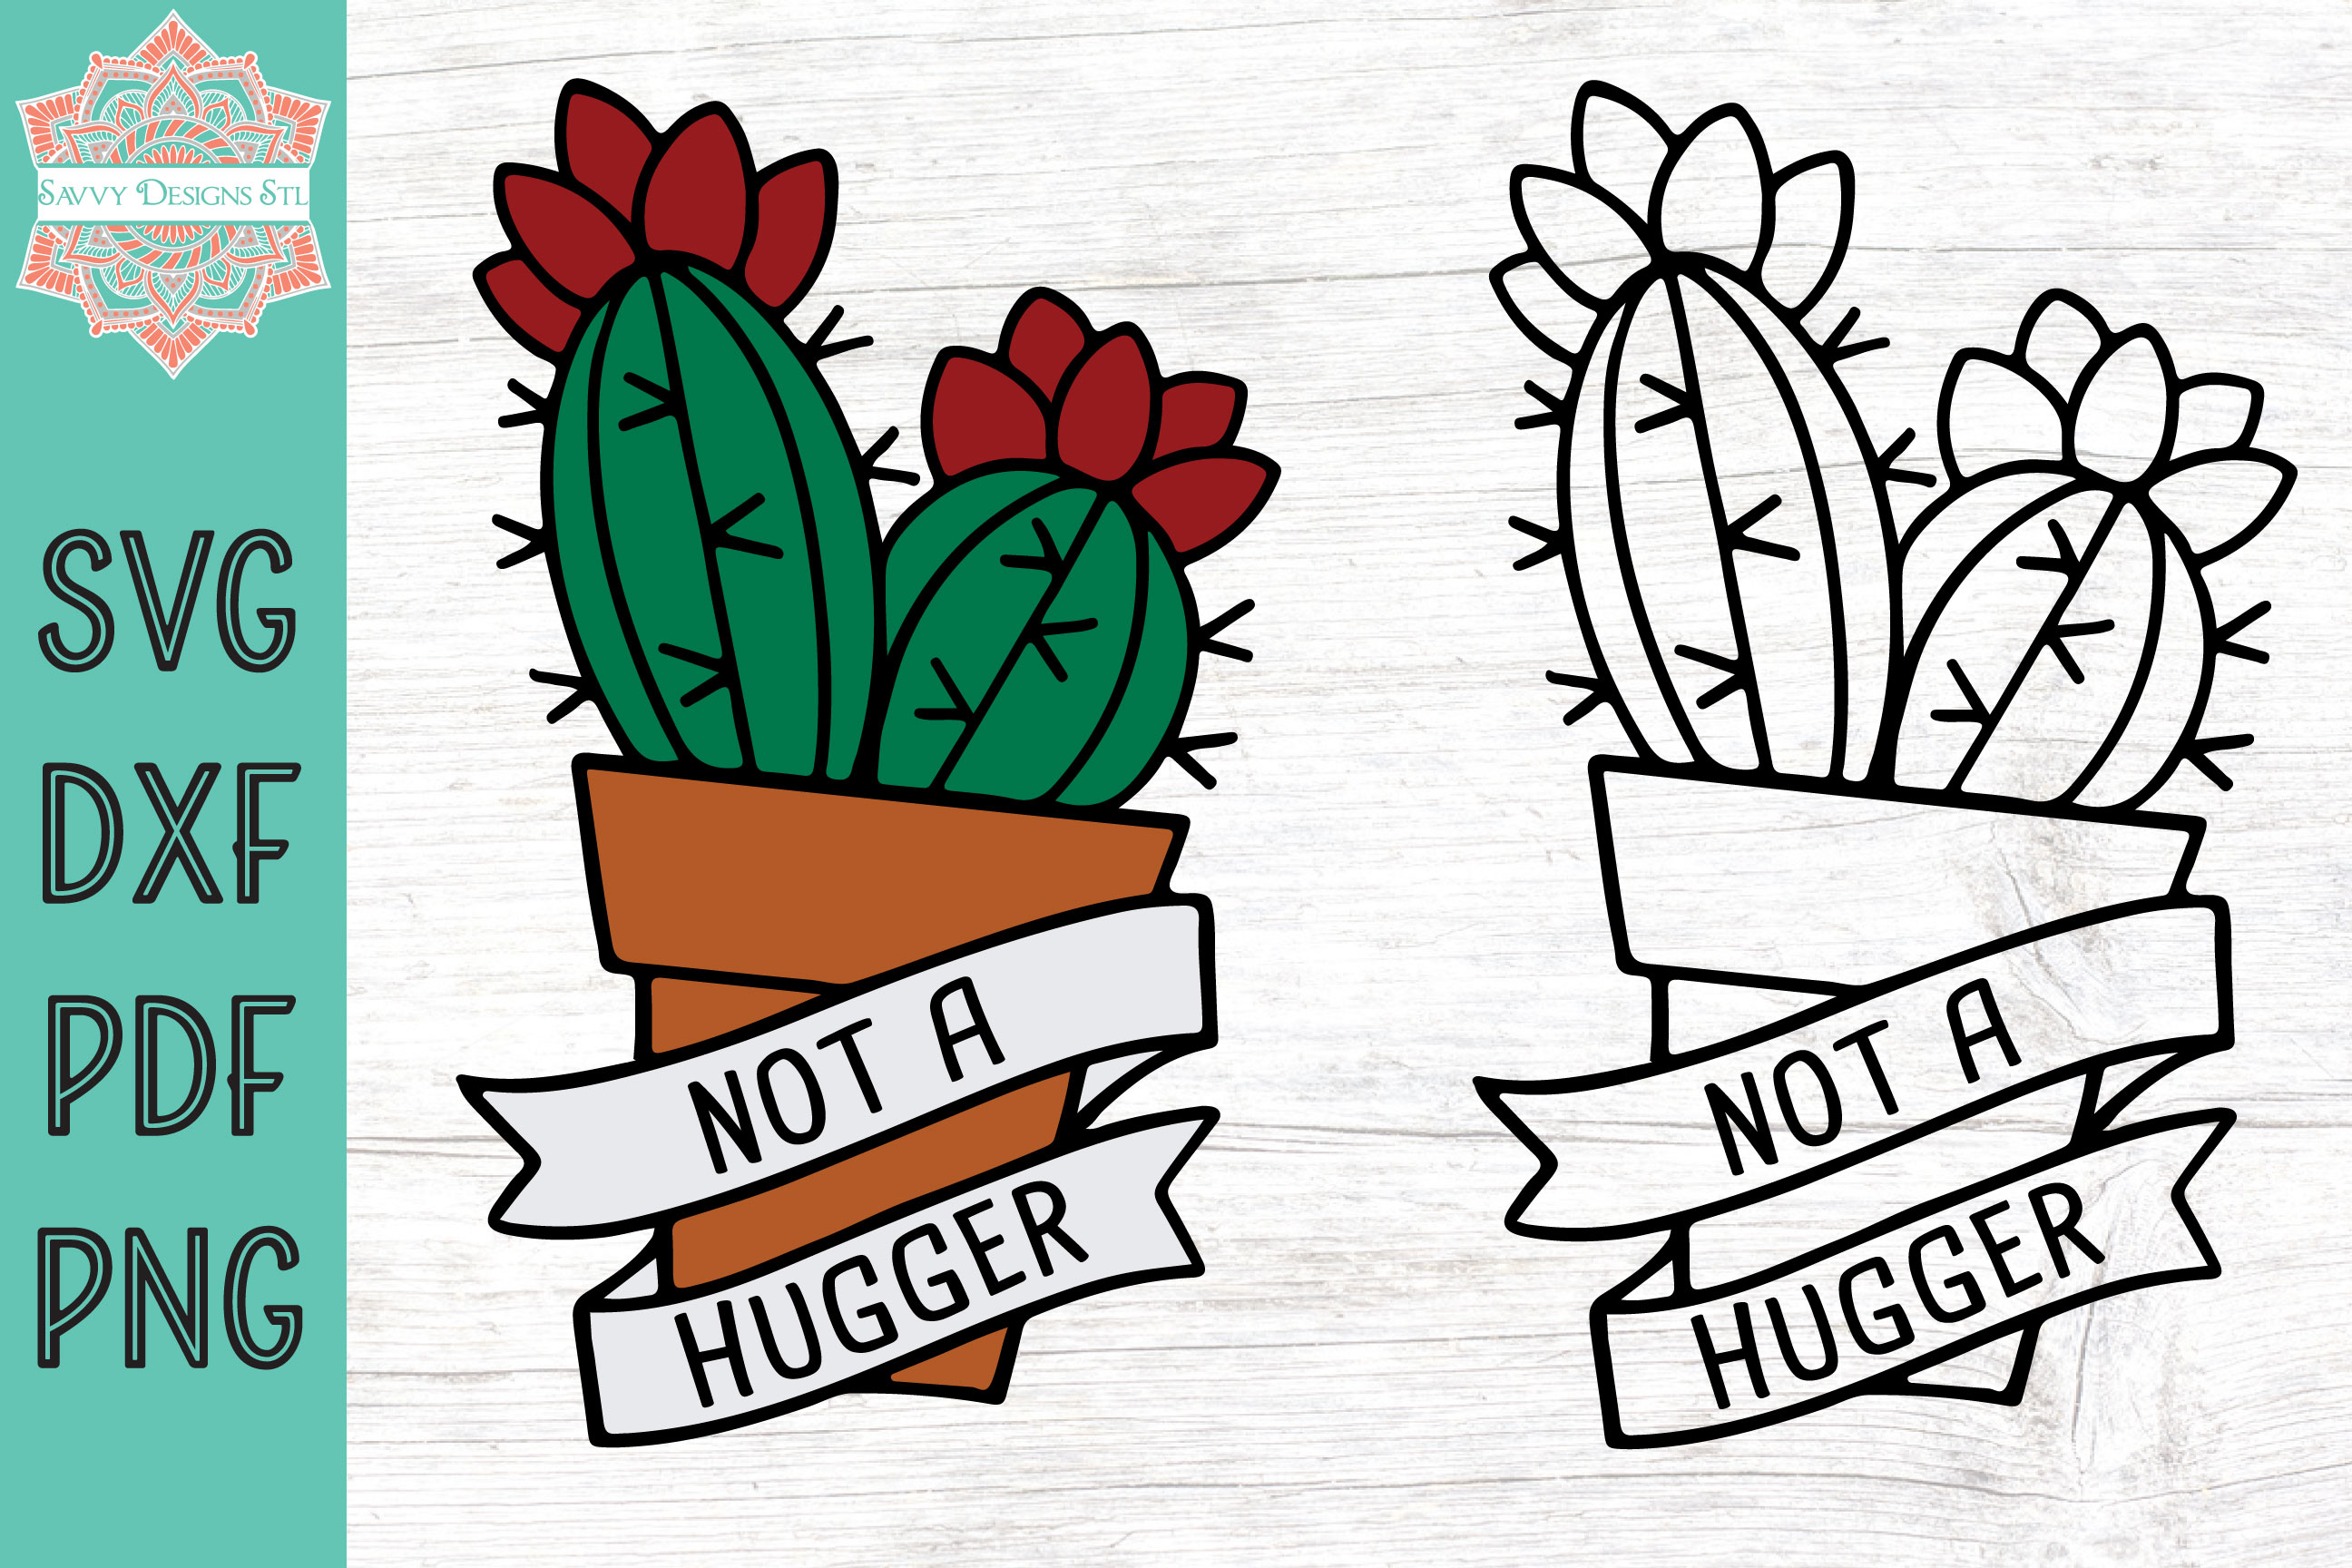 Download Free Not A Hugger Cactus Graphic By Savvydesignsstl Creative Fabrica for Cricut Explore, Silhouette and other cutting machines.